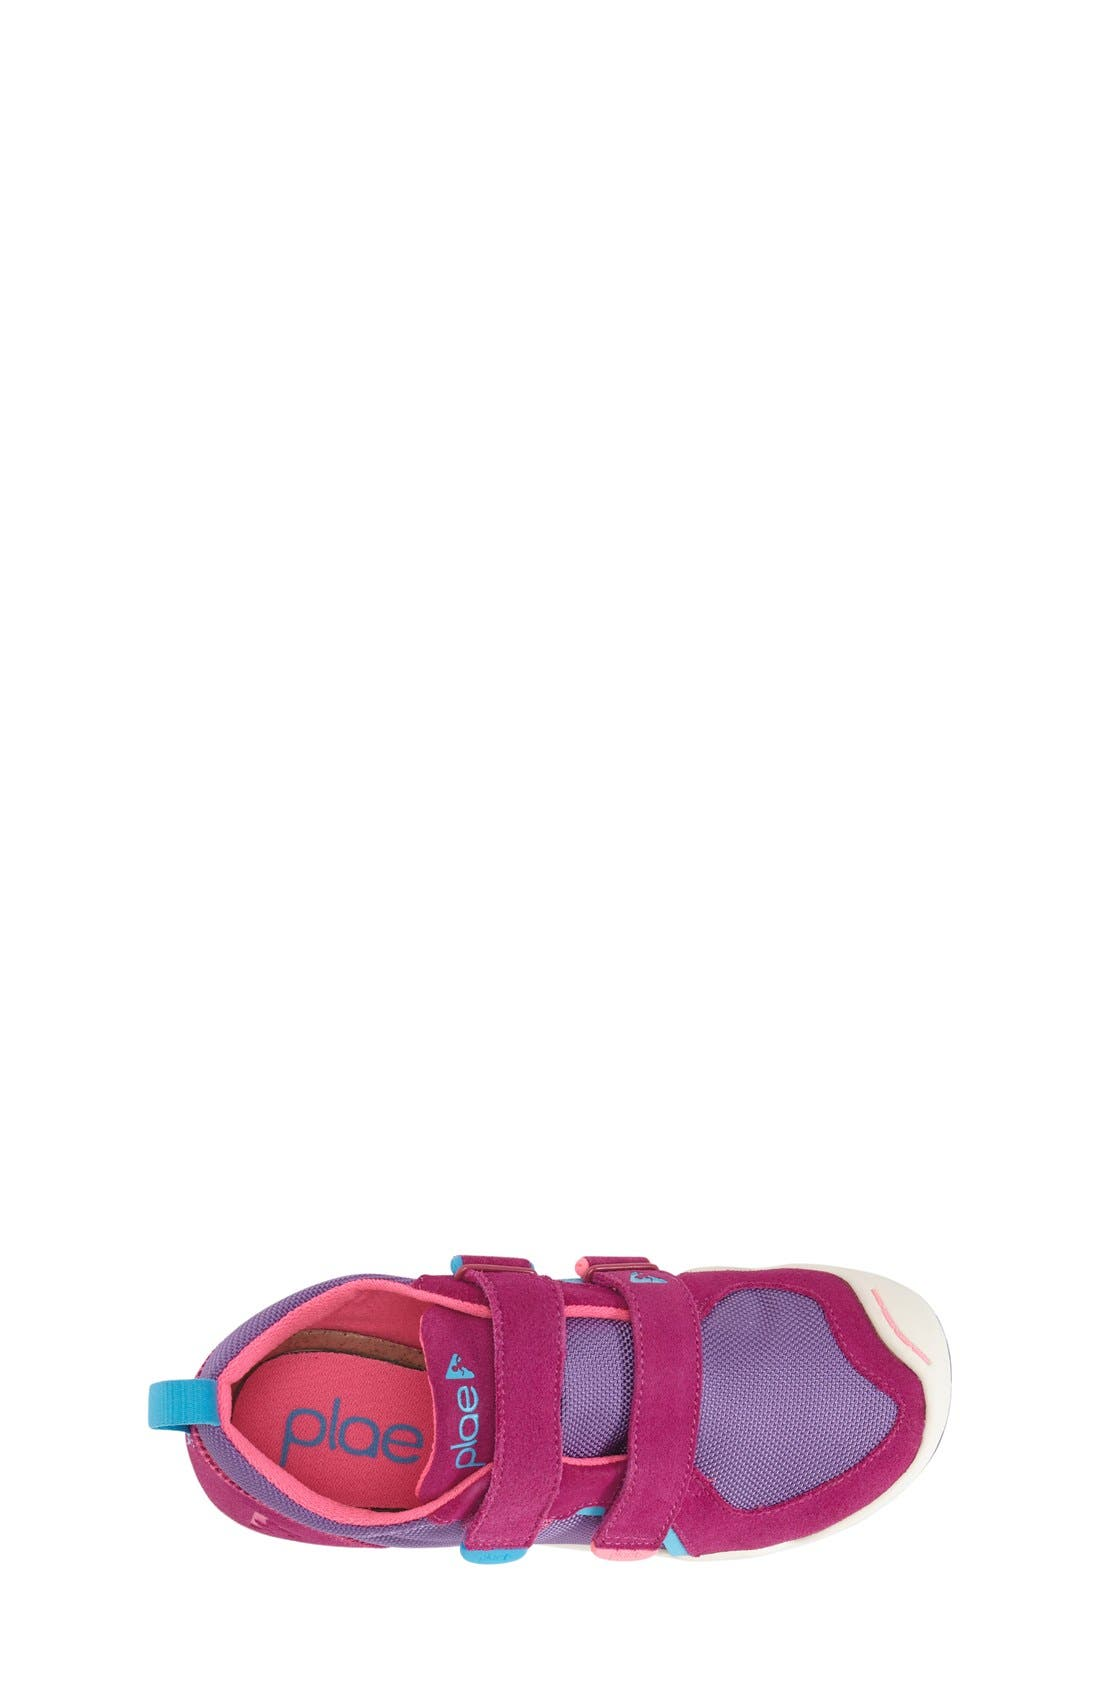 'Ty' Customizable Sneaker,                             Alternate thumbnail 3, color,                             FUCHSIA/ PURPLE